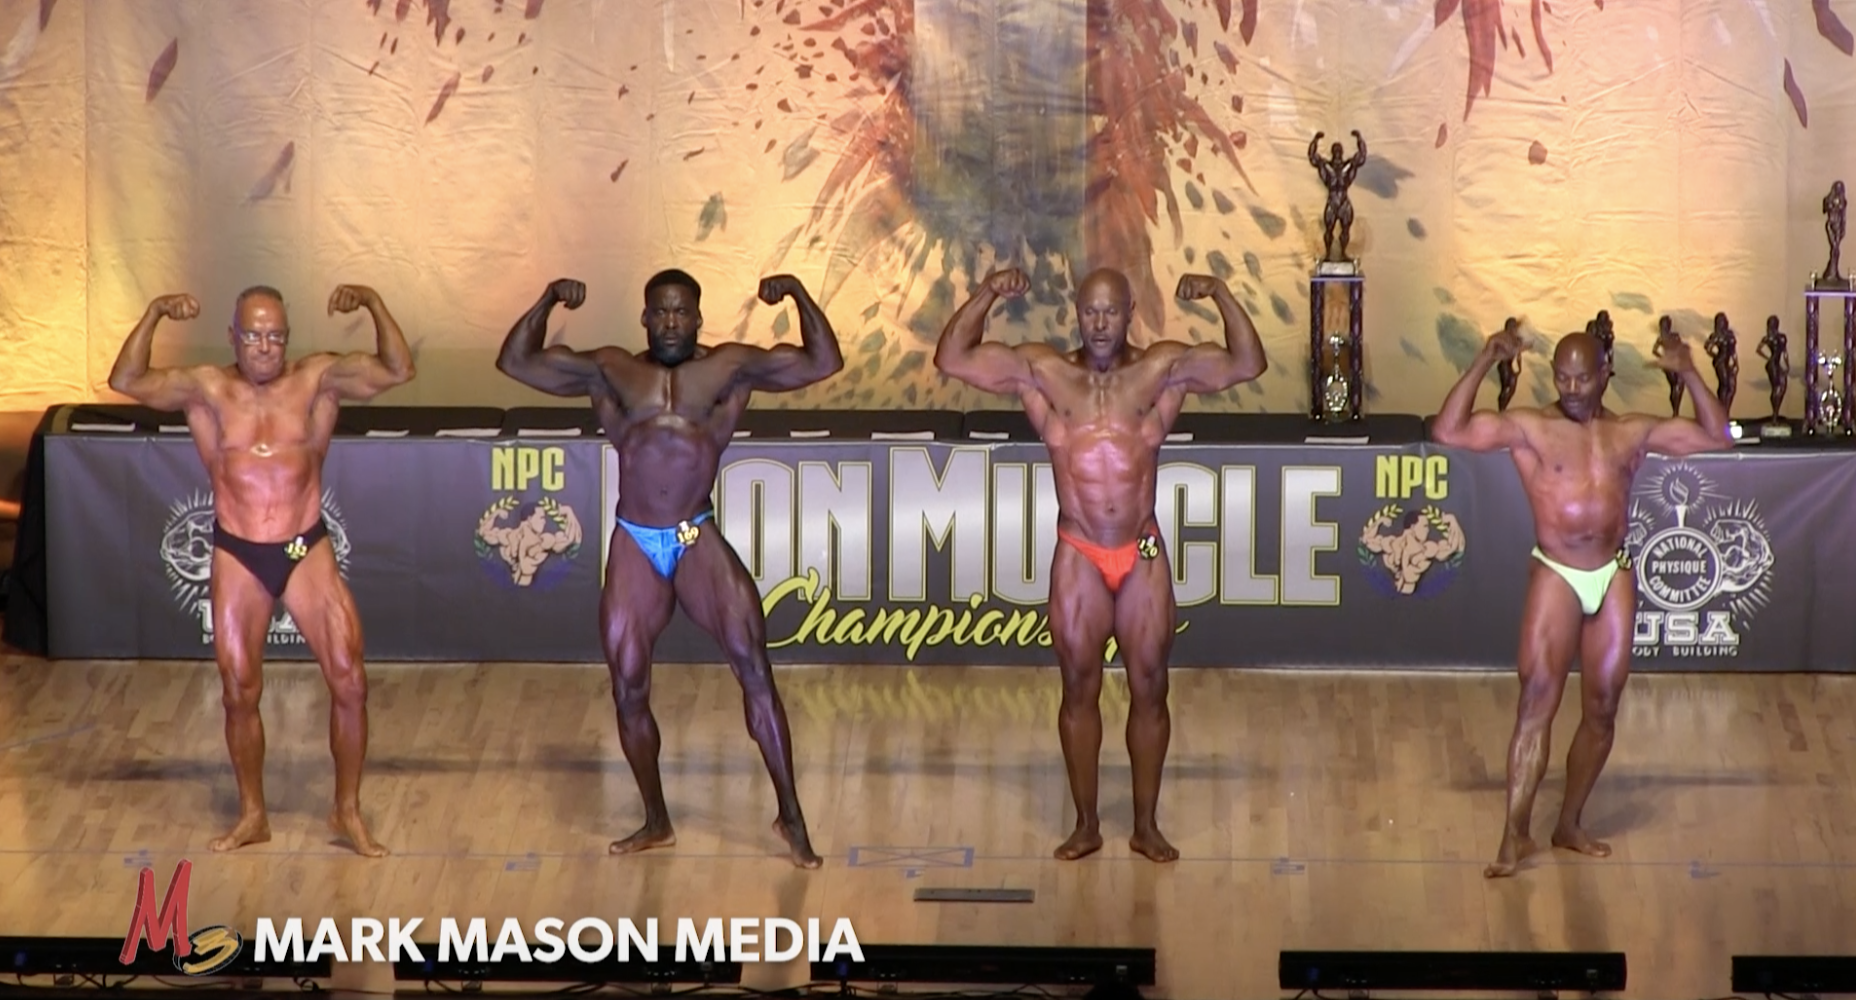 2017 NPC IRON MUSCLE CHAMPIONSHIPS BODYBUILDING OPEN OVERALL VIDEO